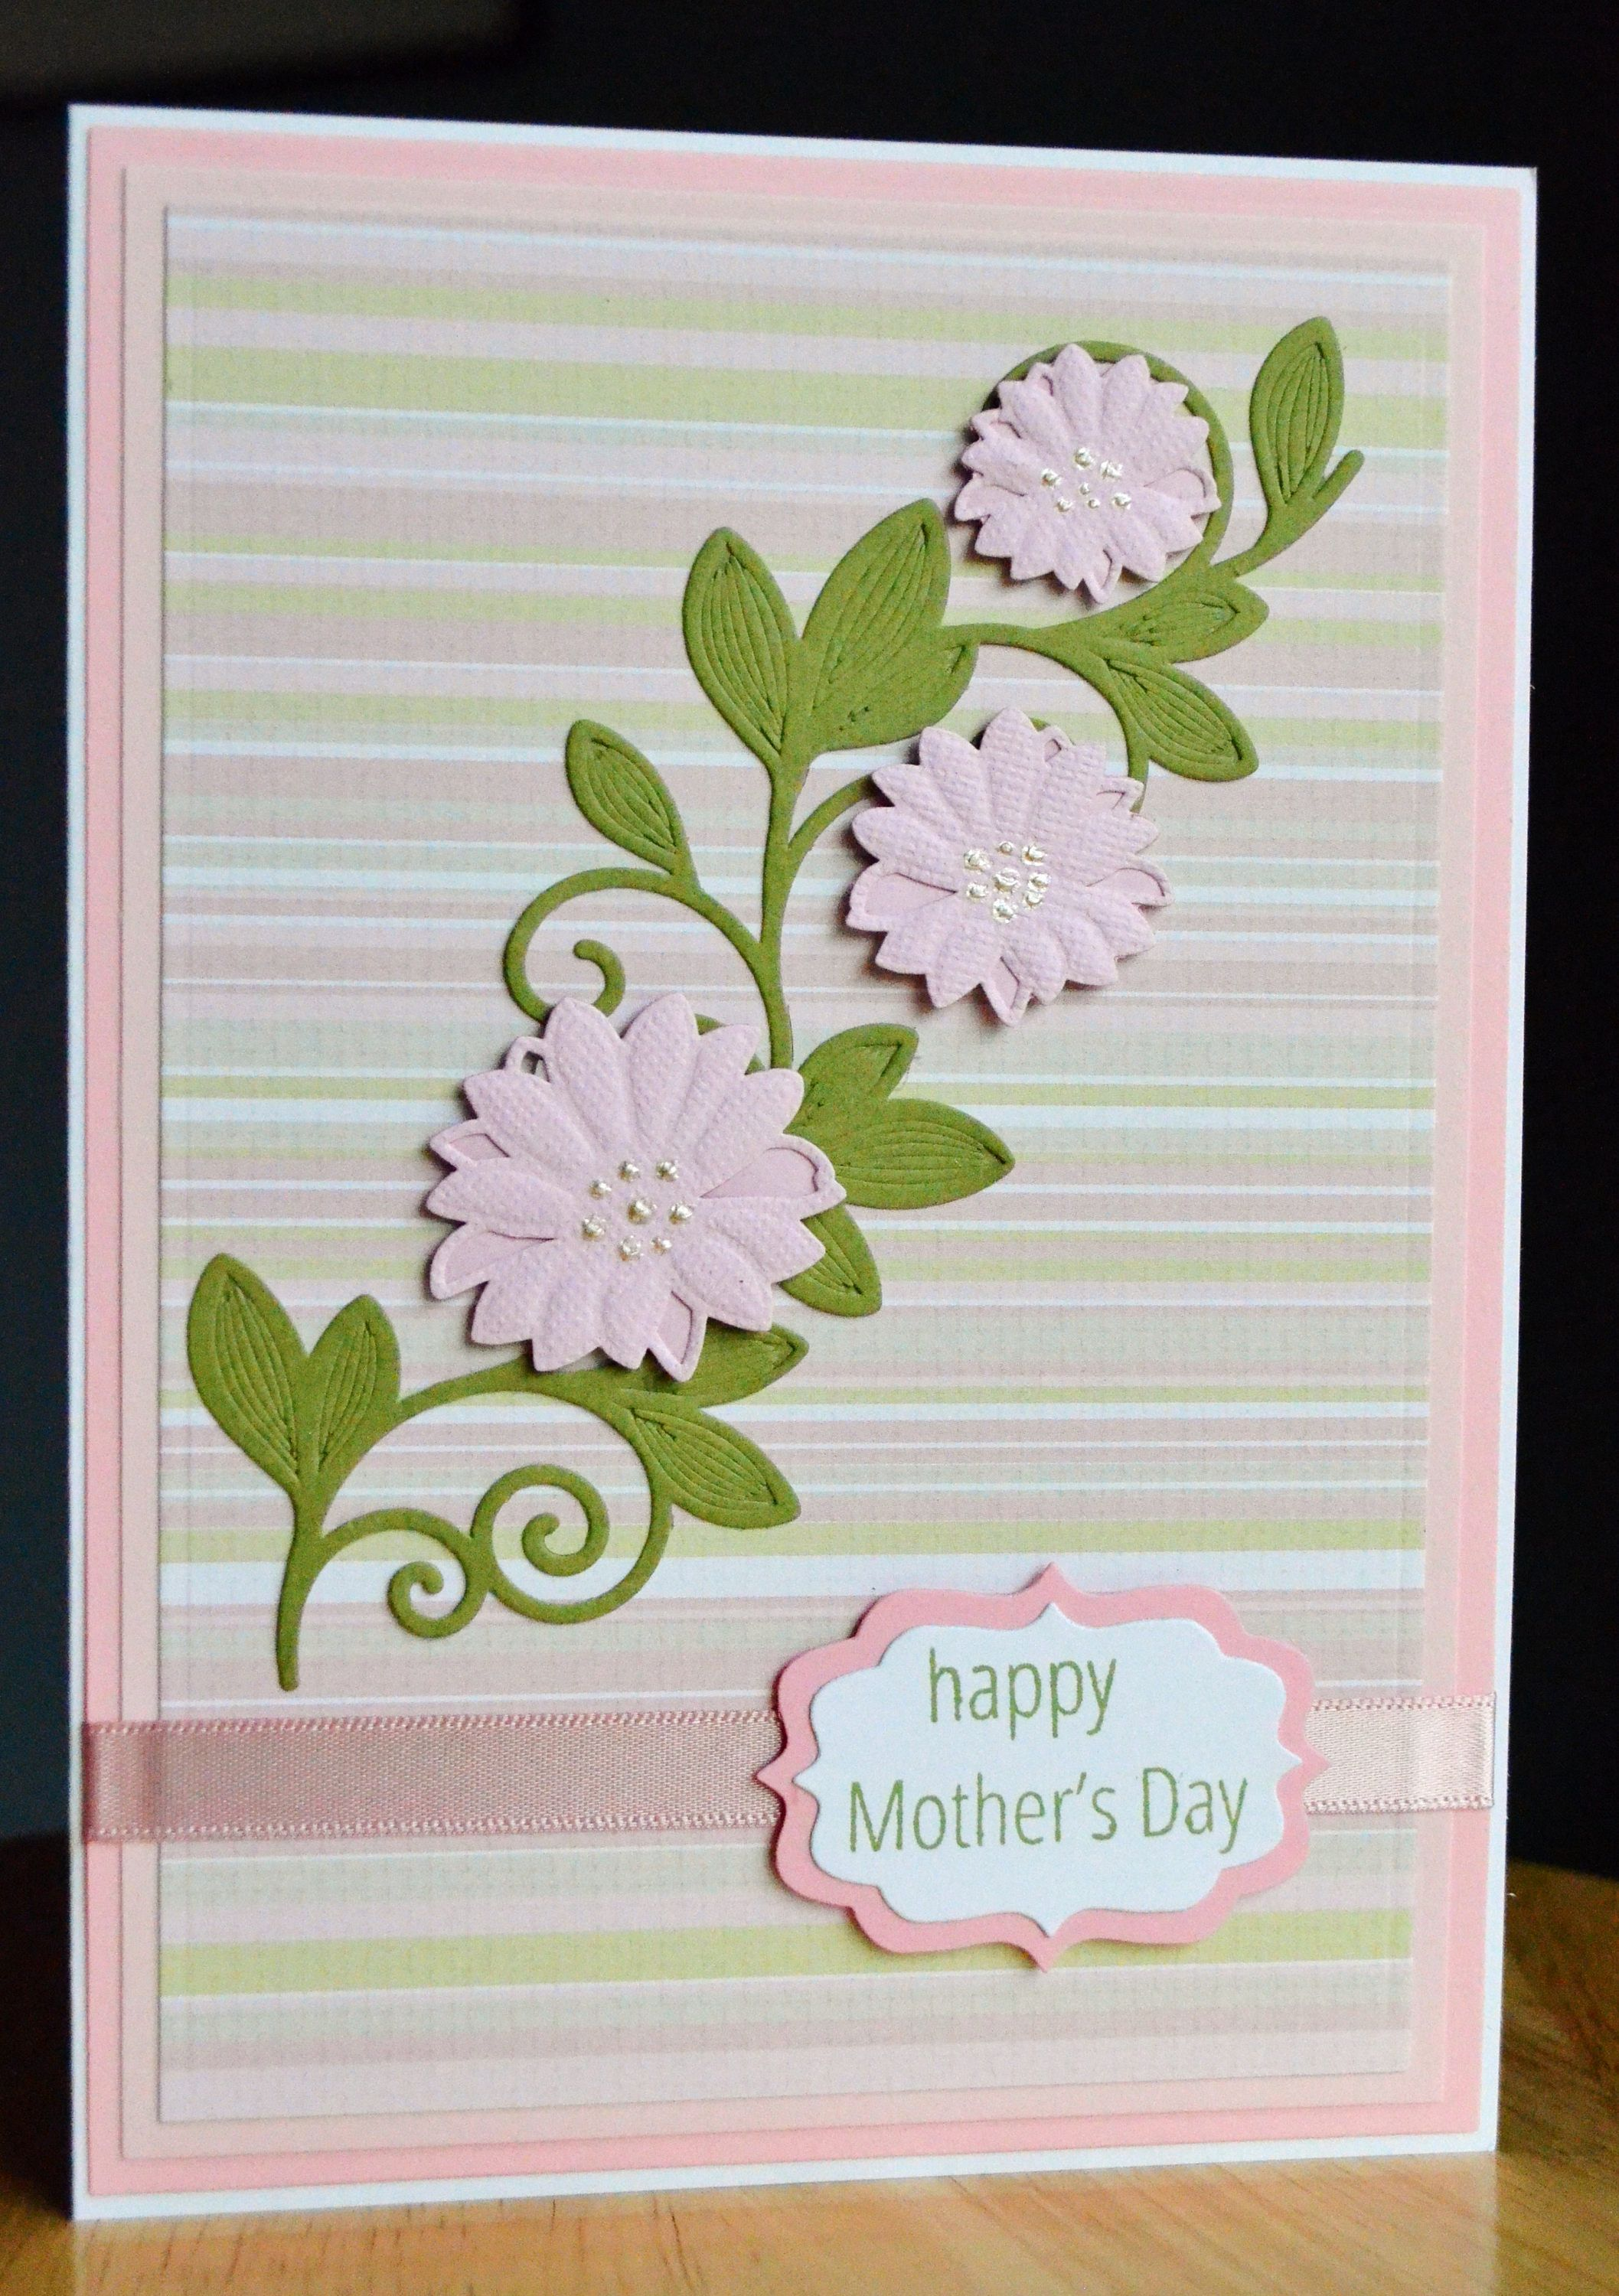 Handmade Mother's Day or Happy Birthday Card-Handmade Card with Branch of Pink Flowers by TreasureIslandCards on Etsy